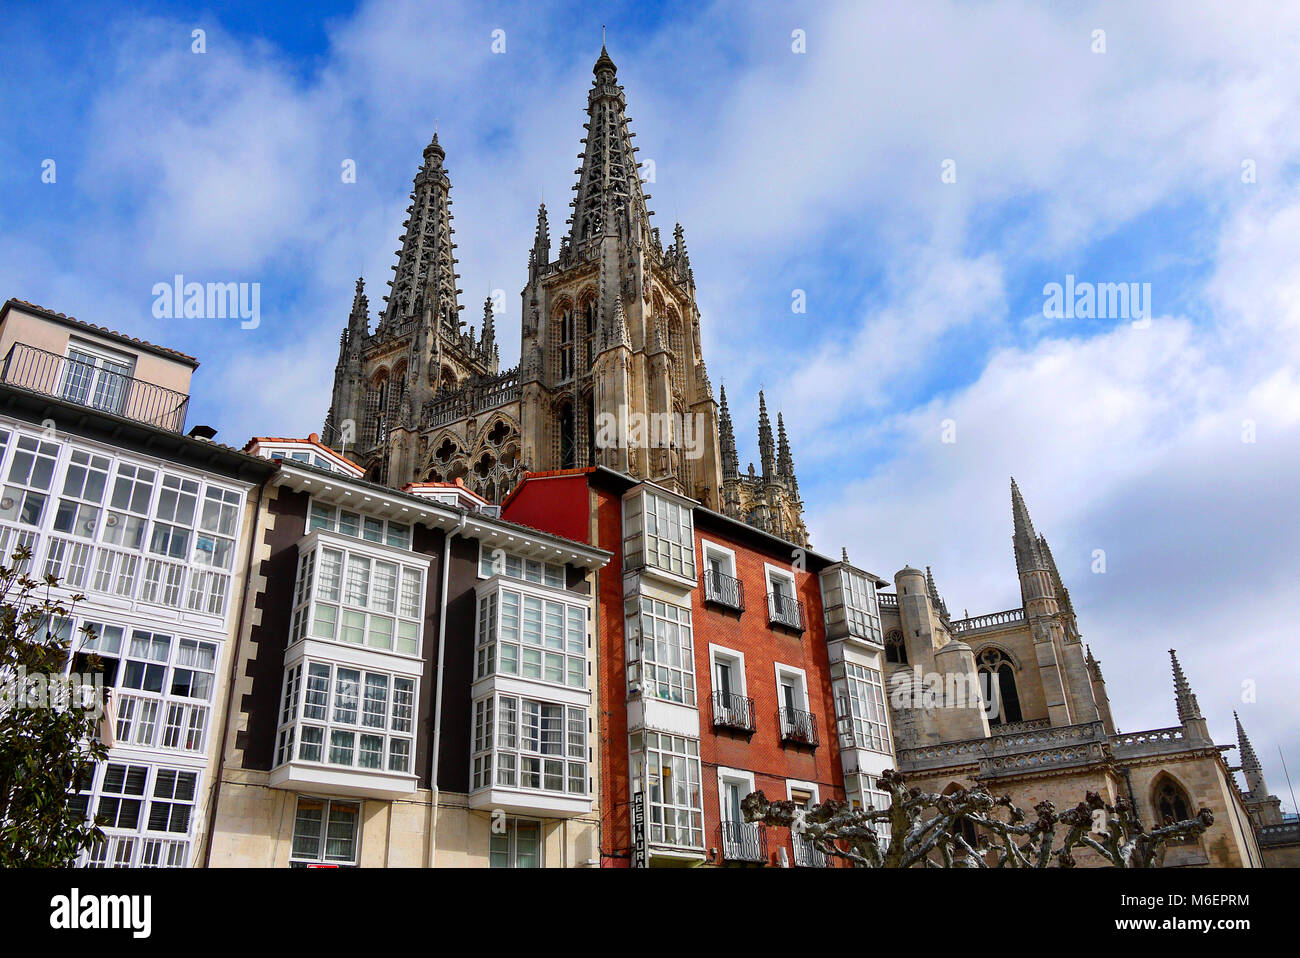 The Cathedral of Saint Mary of Burgos in Burgos, Spain. - Stock Image